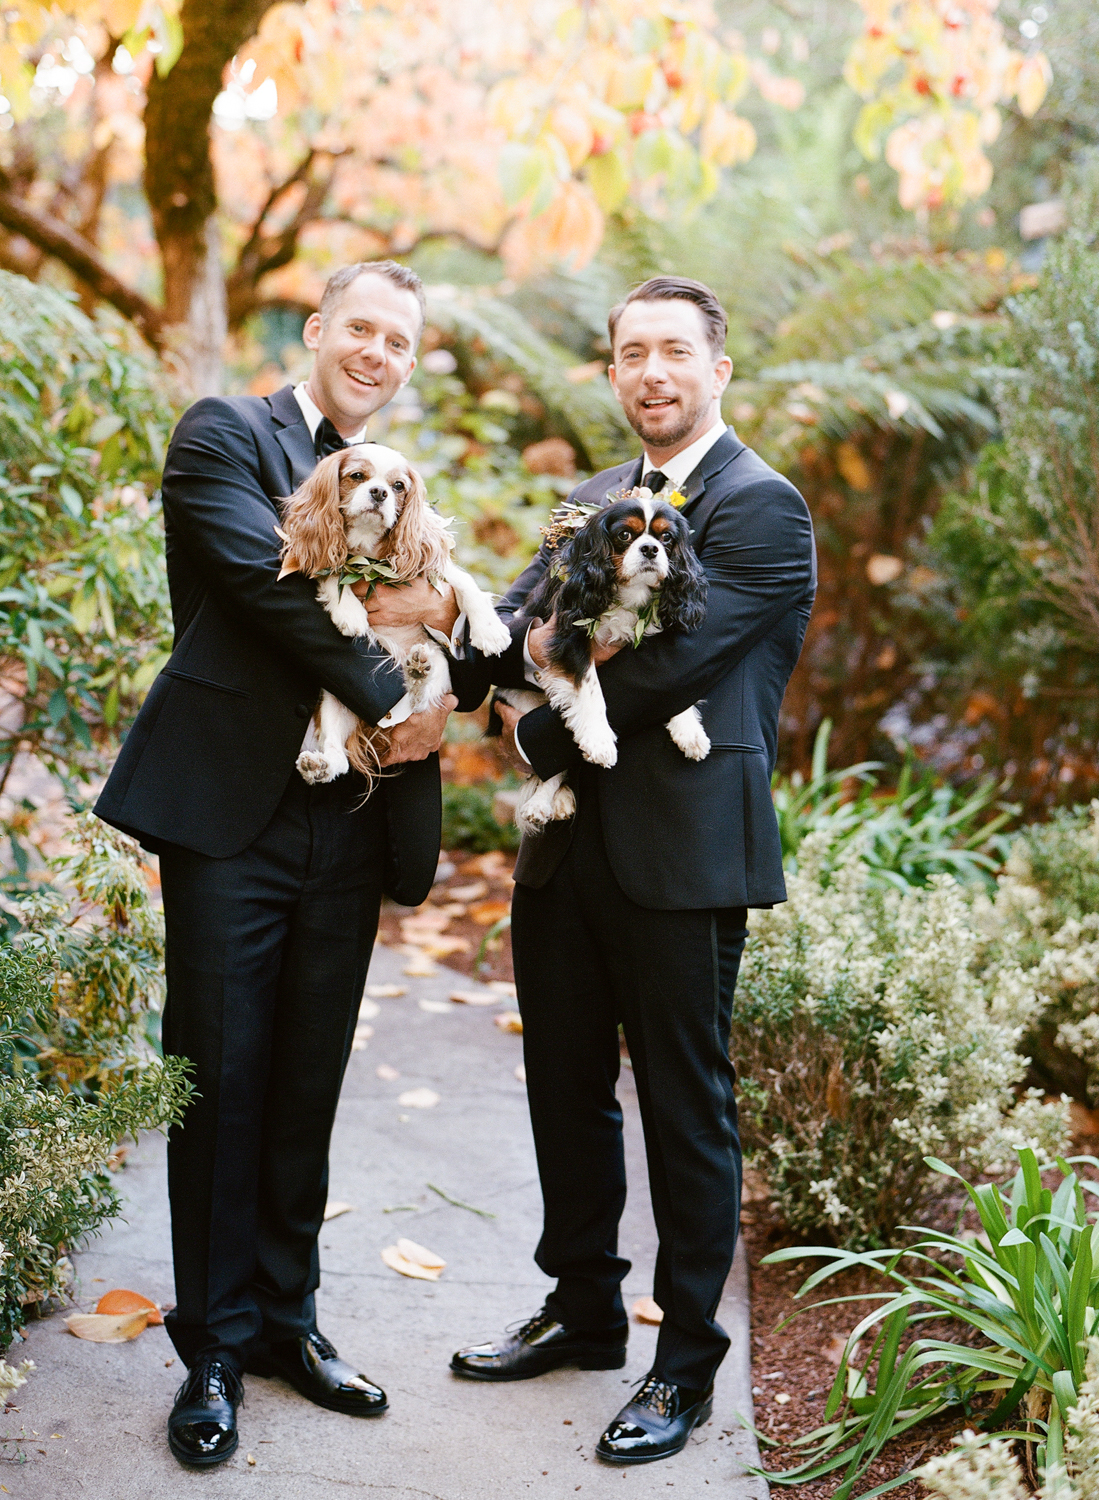 Chris & Andrew holding their King Charles spaniels before the wedding; Sylvie Gil Photography